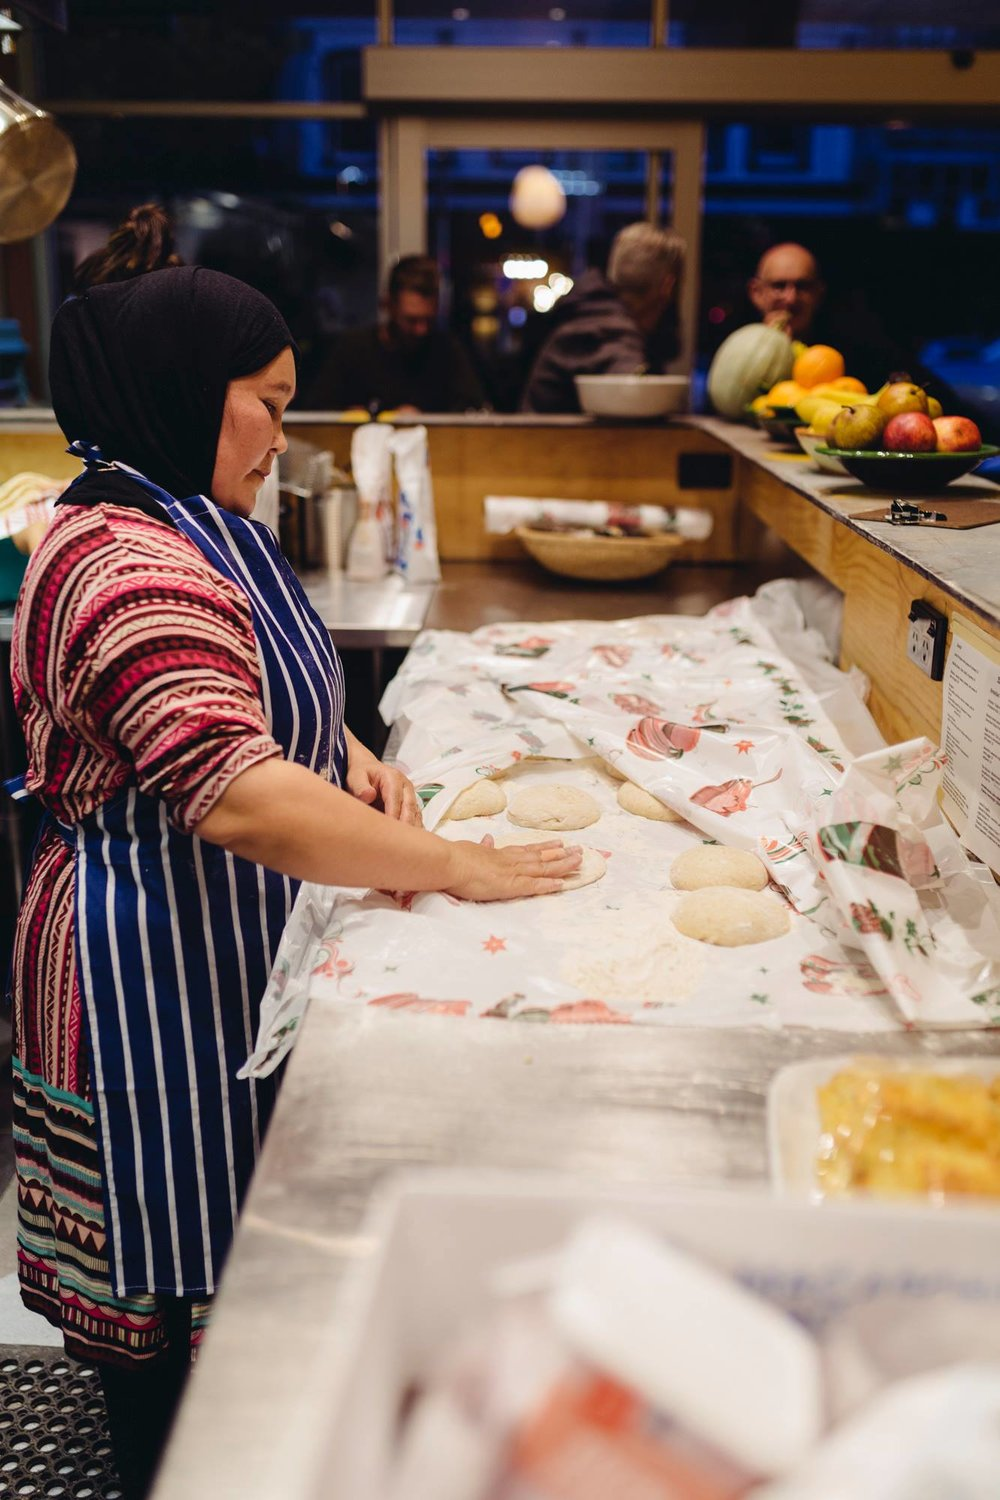 A place where cultures unite, friendships are formed and stories are shared. - A place where everyone can call home.We've teamed up with our mates at Yalla Yalla Cafe to launch the first stage of Home Kitchen - a pop up restaurant!There's more Home Kitchen goodness to come.We'll roll out other great taste experiences like cooking classes, catering and fundraising events that support refugee community initiatives here and overseas.Home Kitchen is a social enterprise focused on empowering former refugees to flourish by providing work and training opportunities whilst showcasing the diverse cultures that exist in the mighty 'Tron.'Our profits go towards providing more employment and training opportunities through Home Kitchen and supporting other refugee-led initiatives both here and overseas.